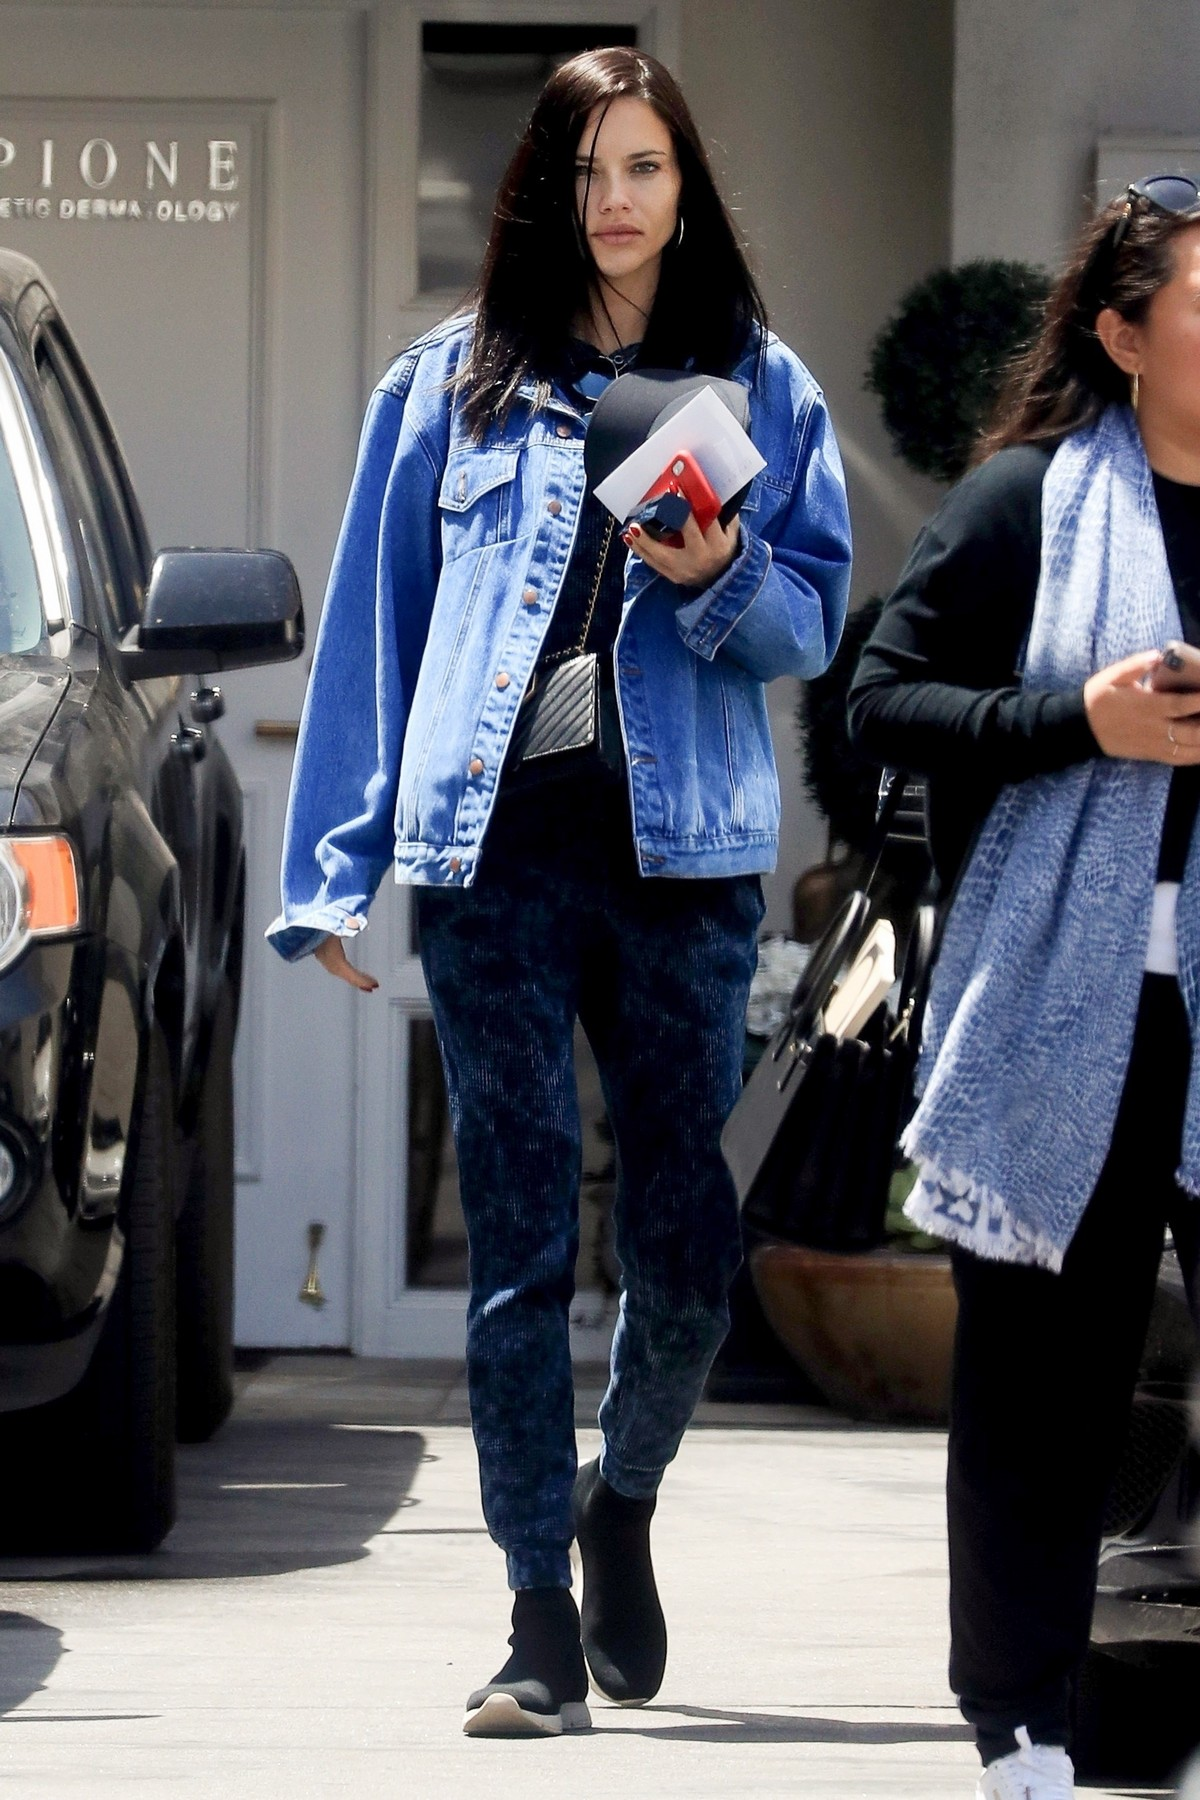 Adriana Lima at A dermatologist in Beverly Hills 2019/05/012019 2